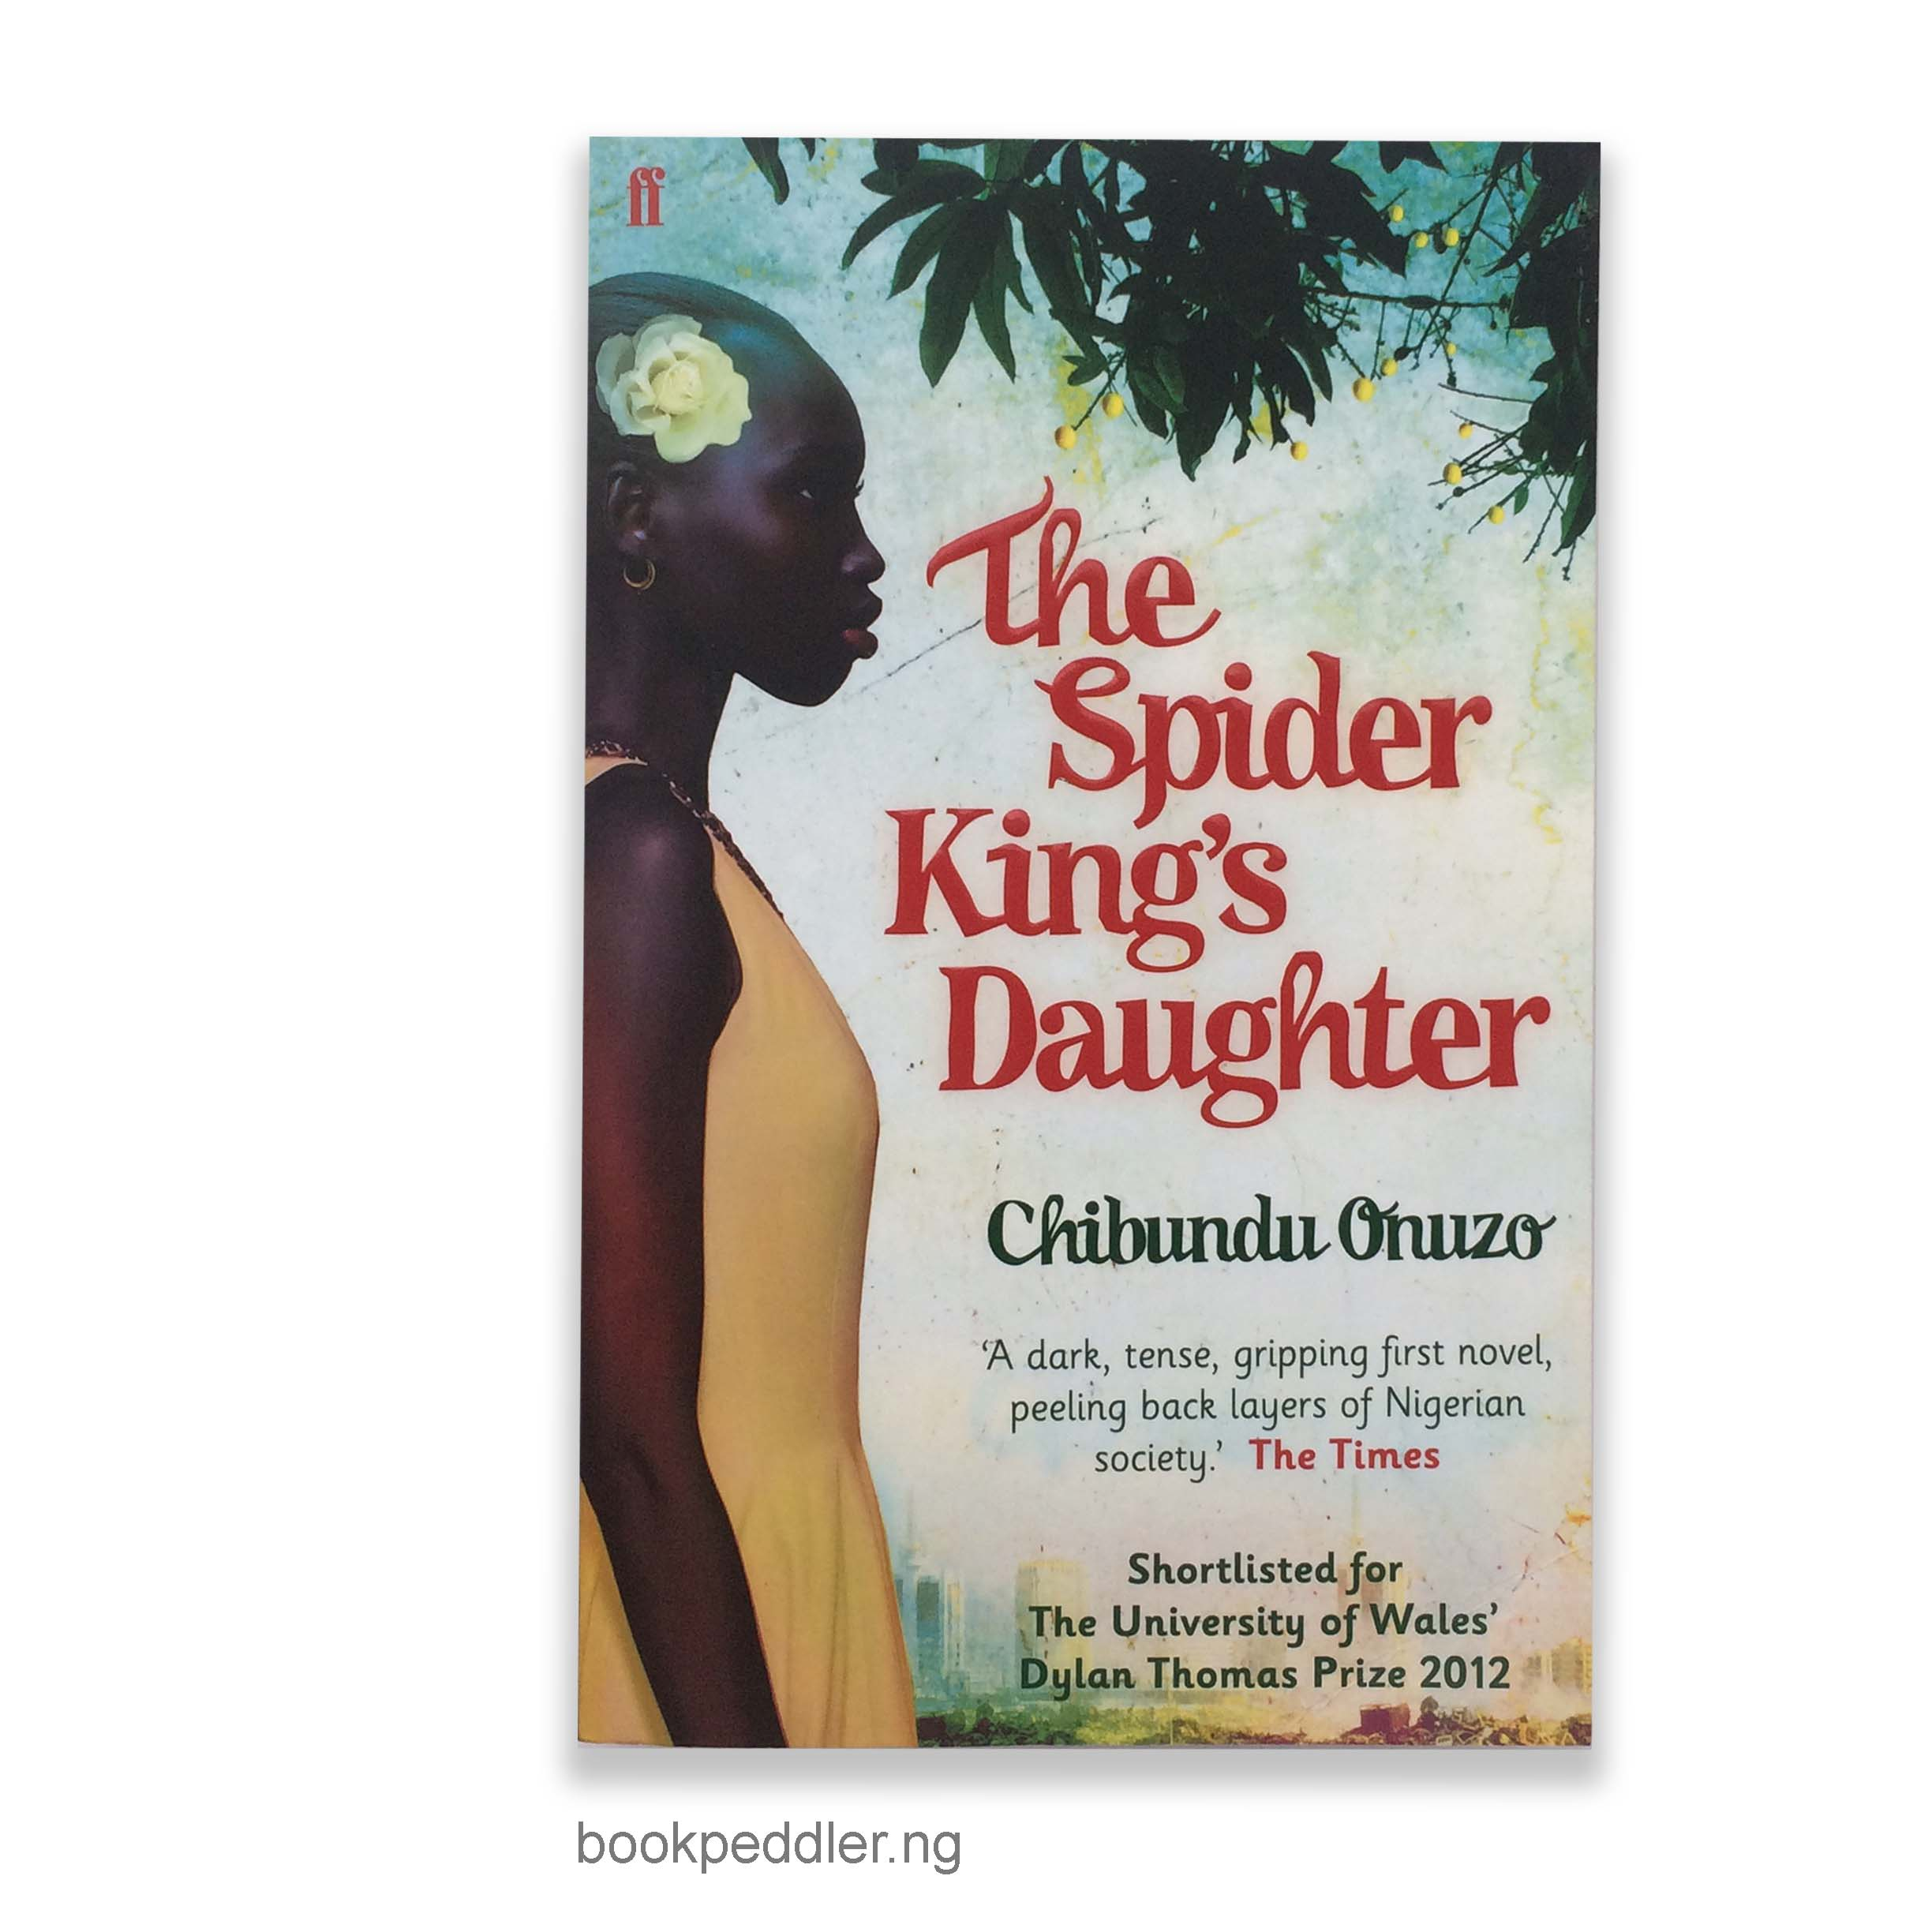 The Spider Kings Daughter